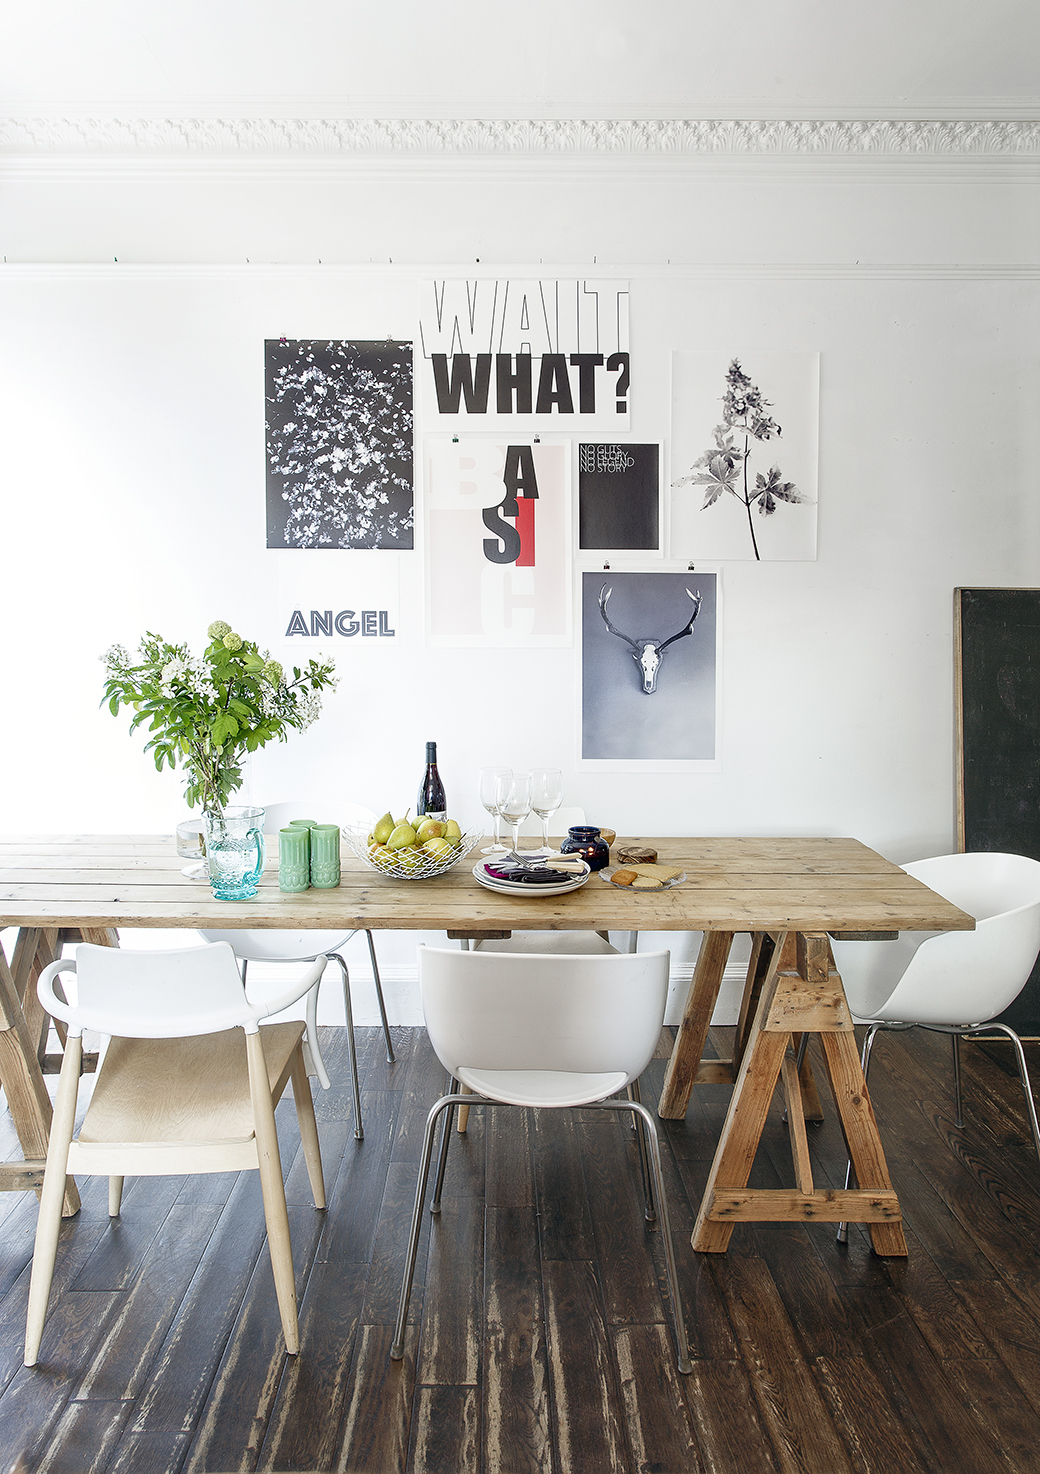 A selection of prints from We Are Amused are artfully arranged, unframed, held up by white tack, bulldog clips add a functional, decorative note.